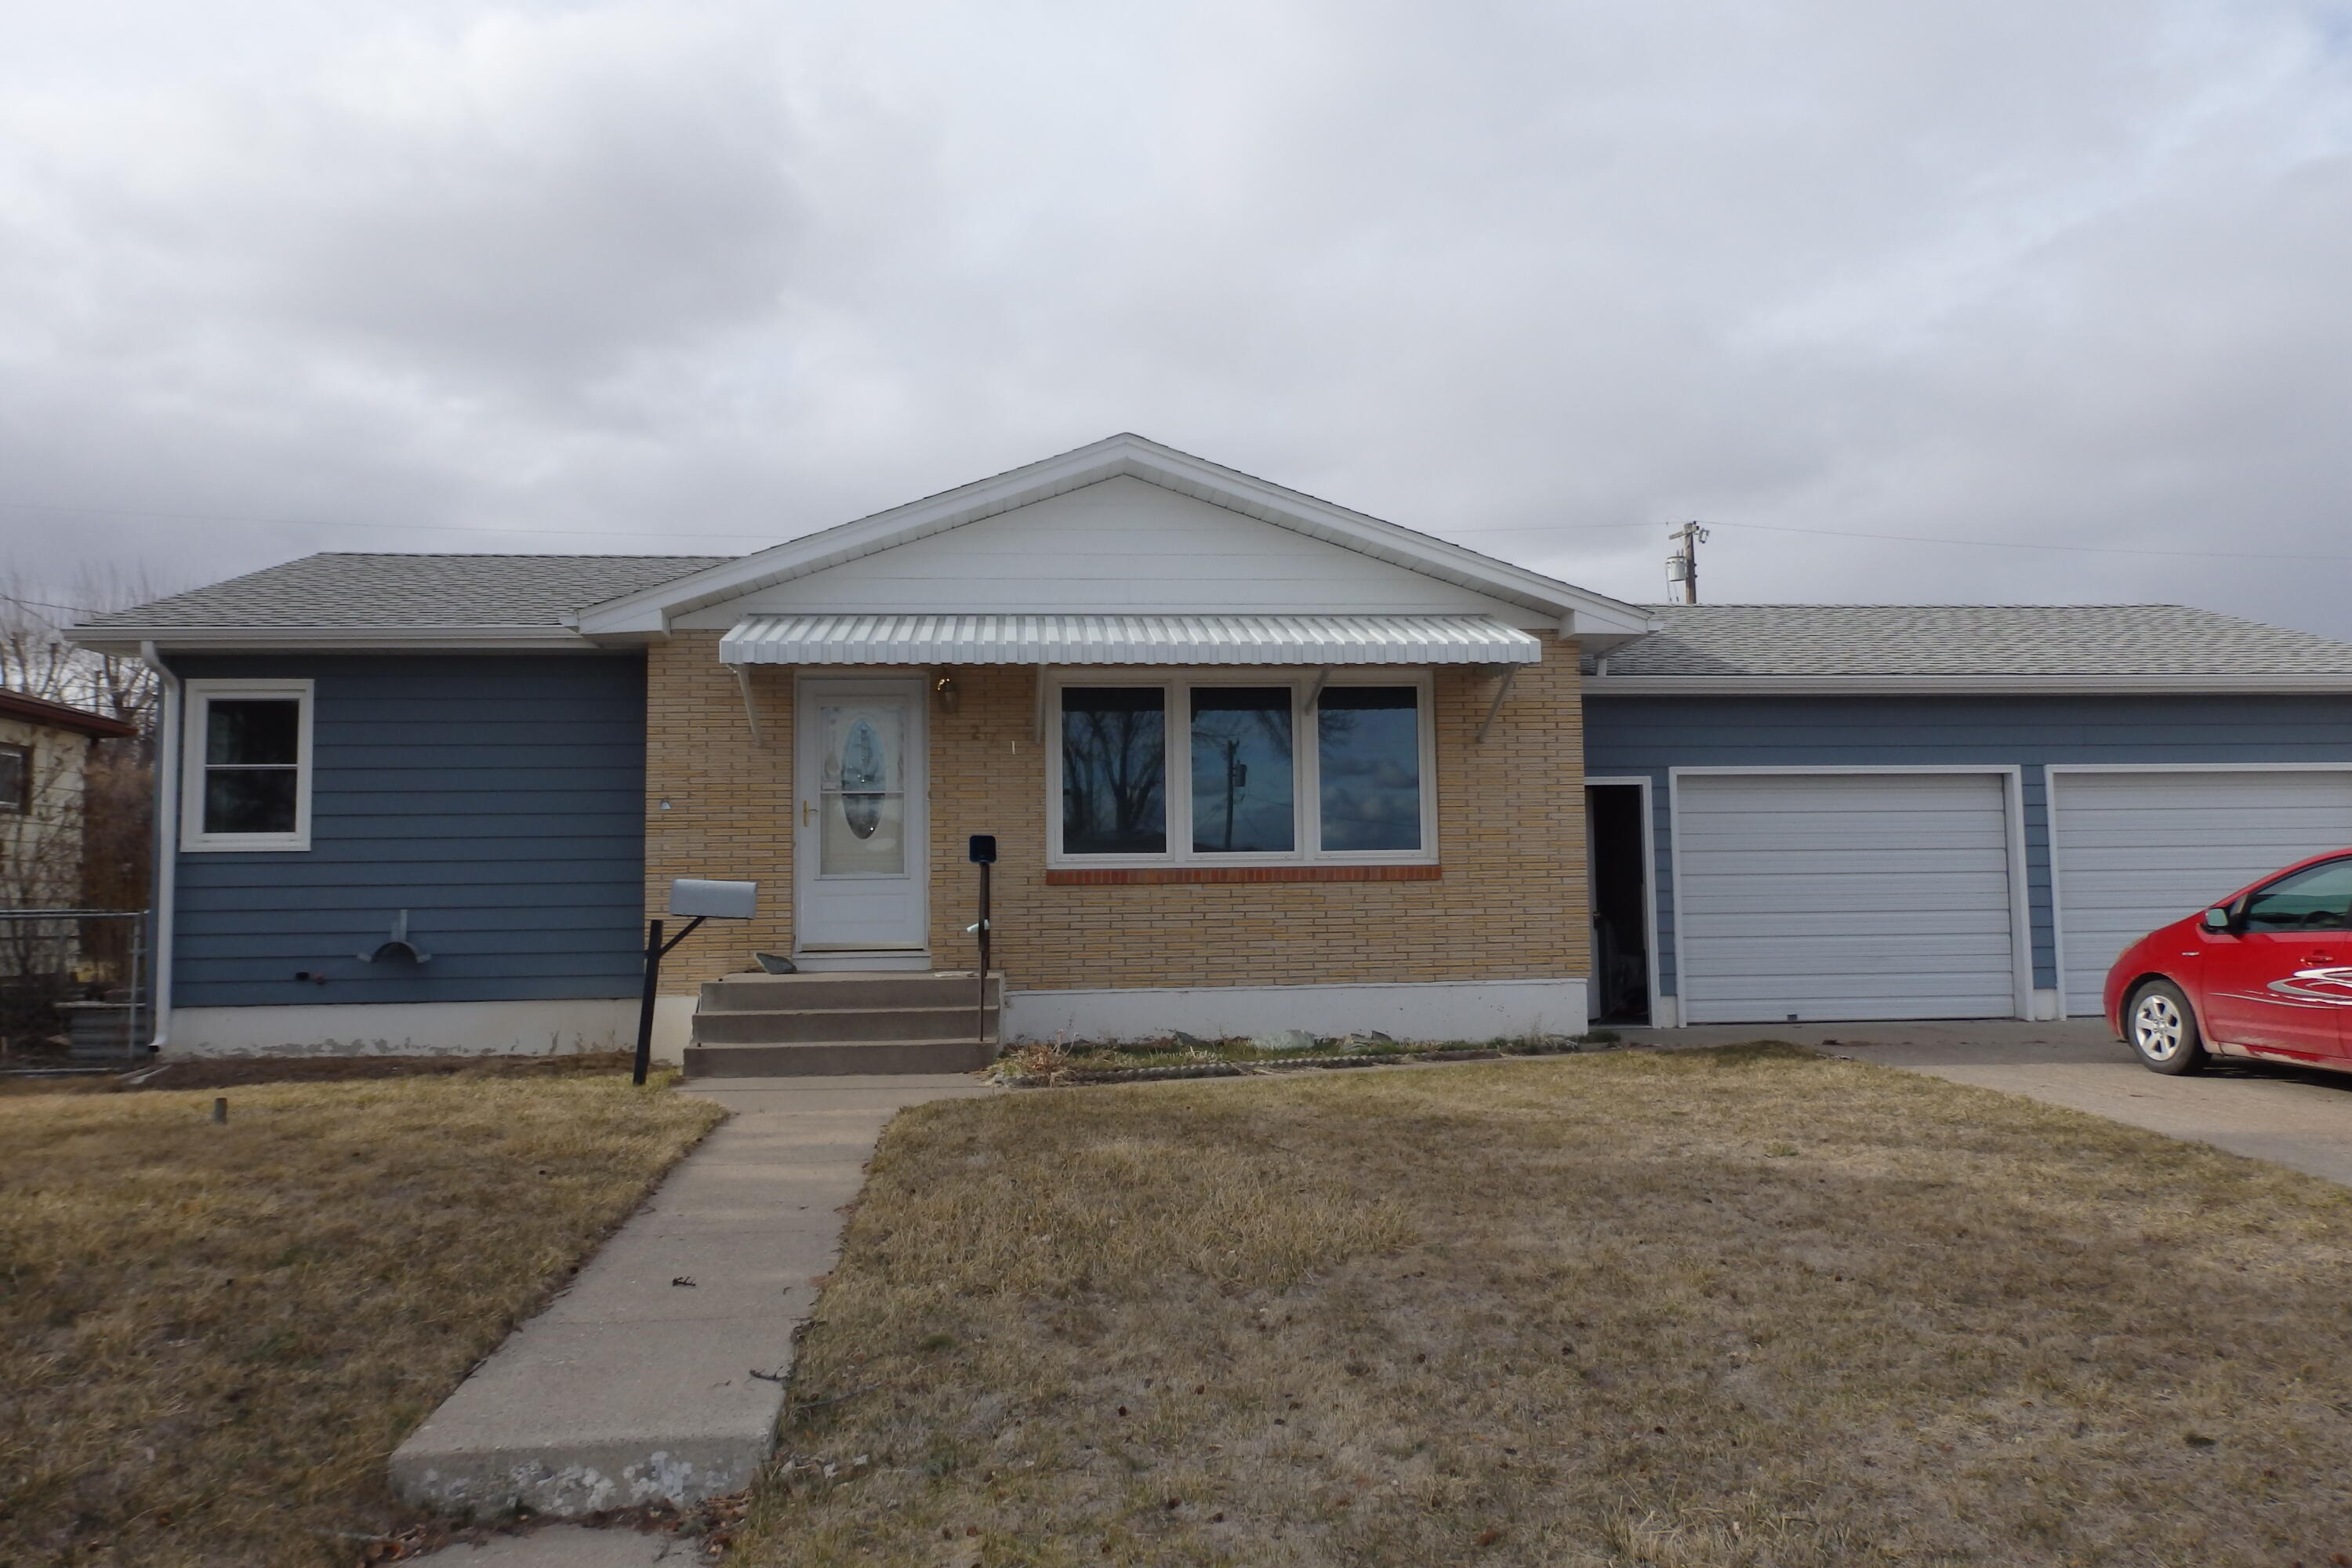 Property is subject to a short sale at this price.  Per appraisal approx. $30,000 of repairs needed inside to bring up to lender requirements.  See list of items needed for short sale, in Attachments.  Was winterized by bank after cold spell, so assume water pipe issues.